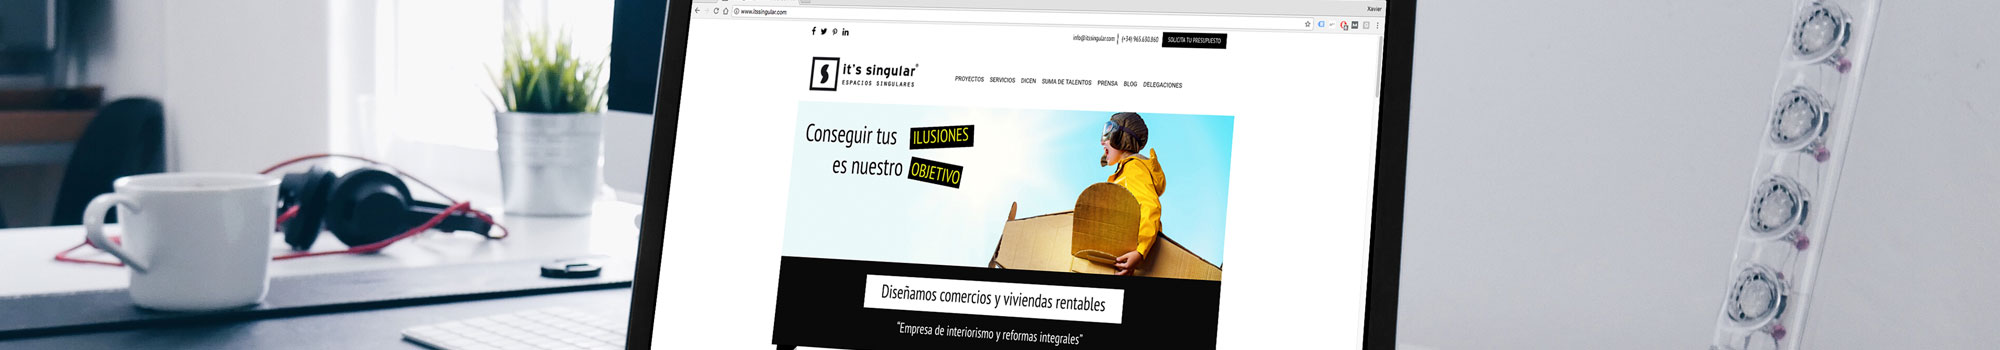 desarrollo-wordpress-interioristas-its-singular